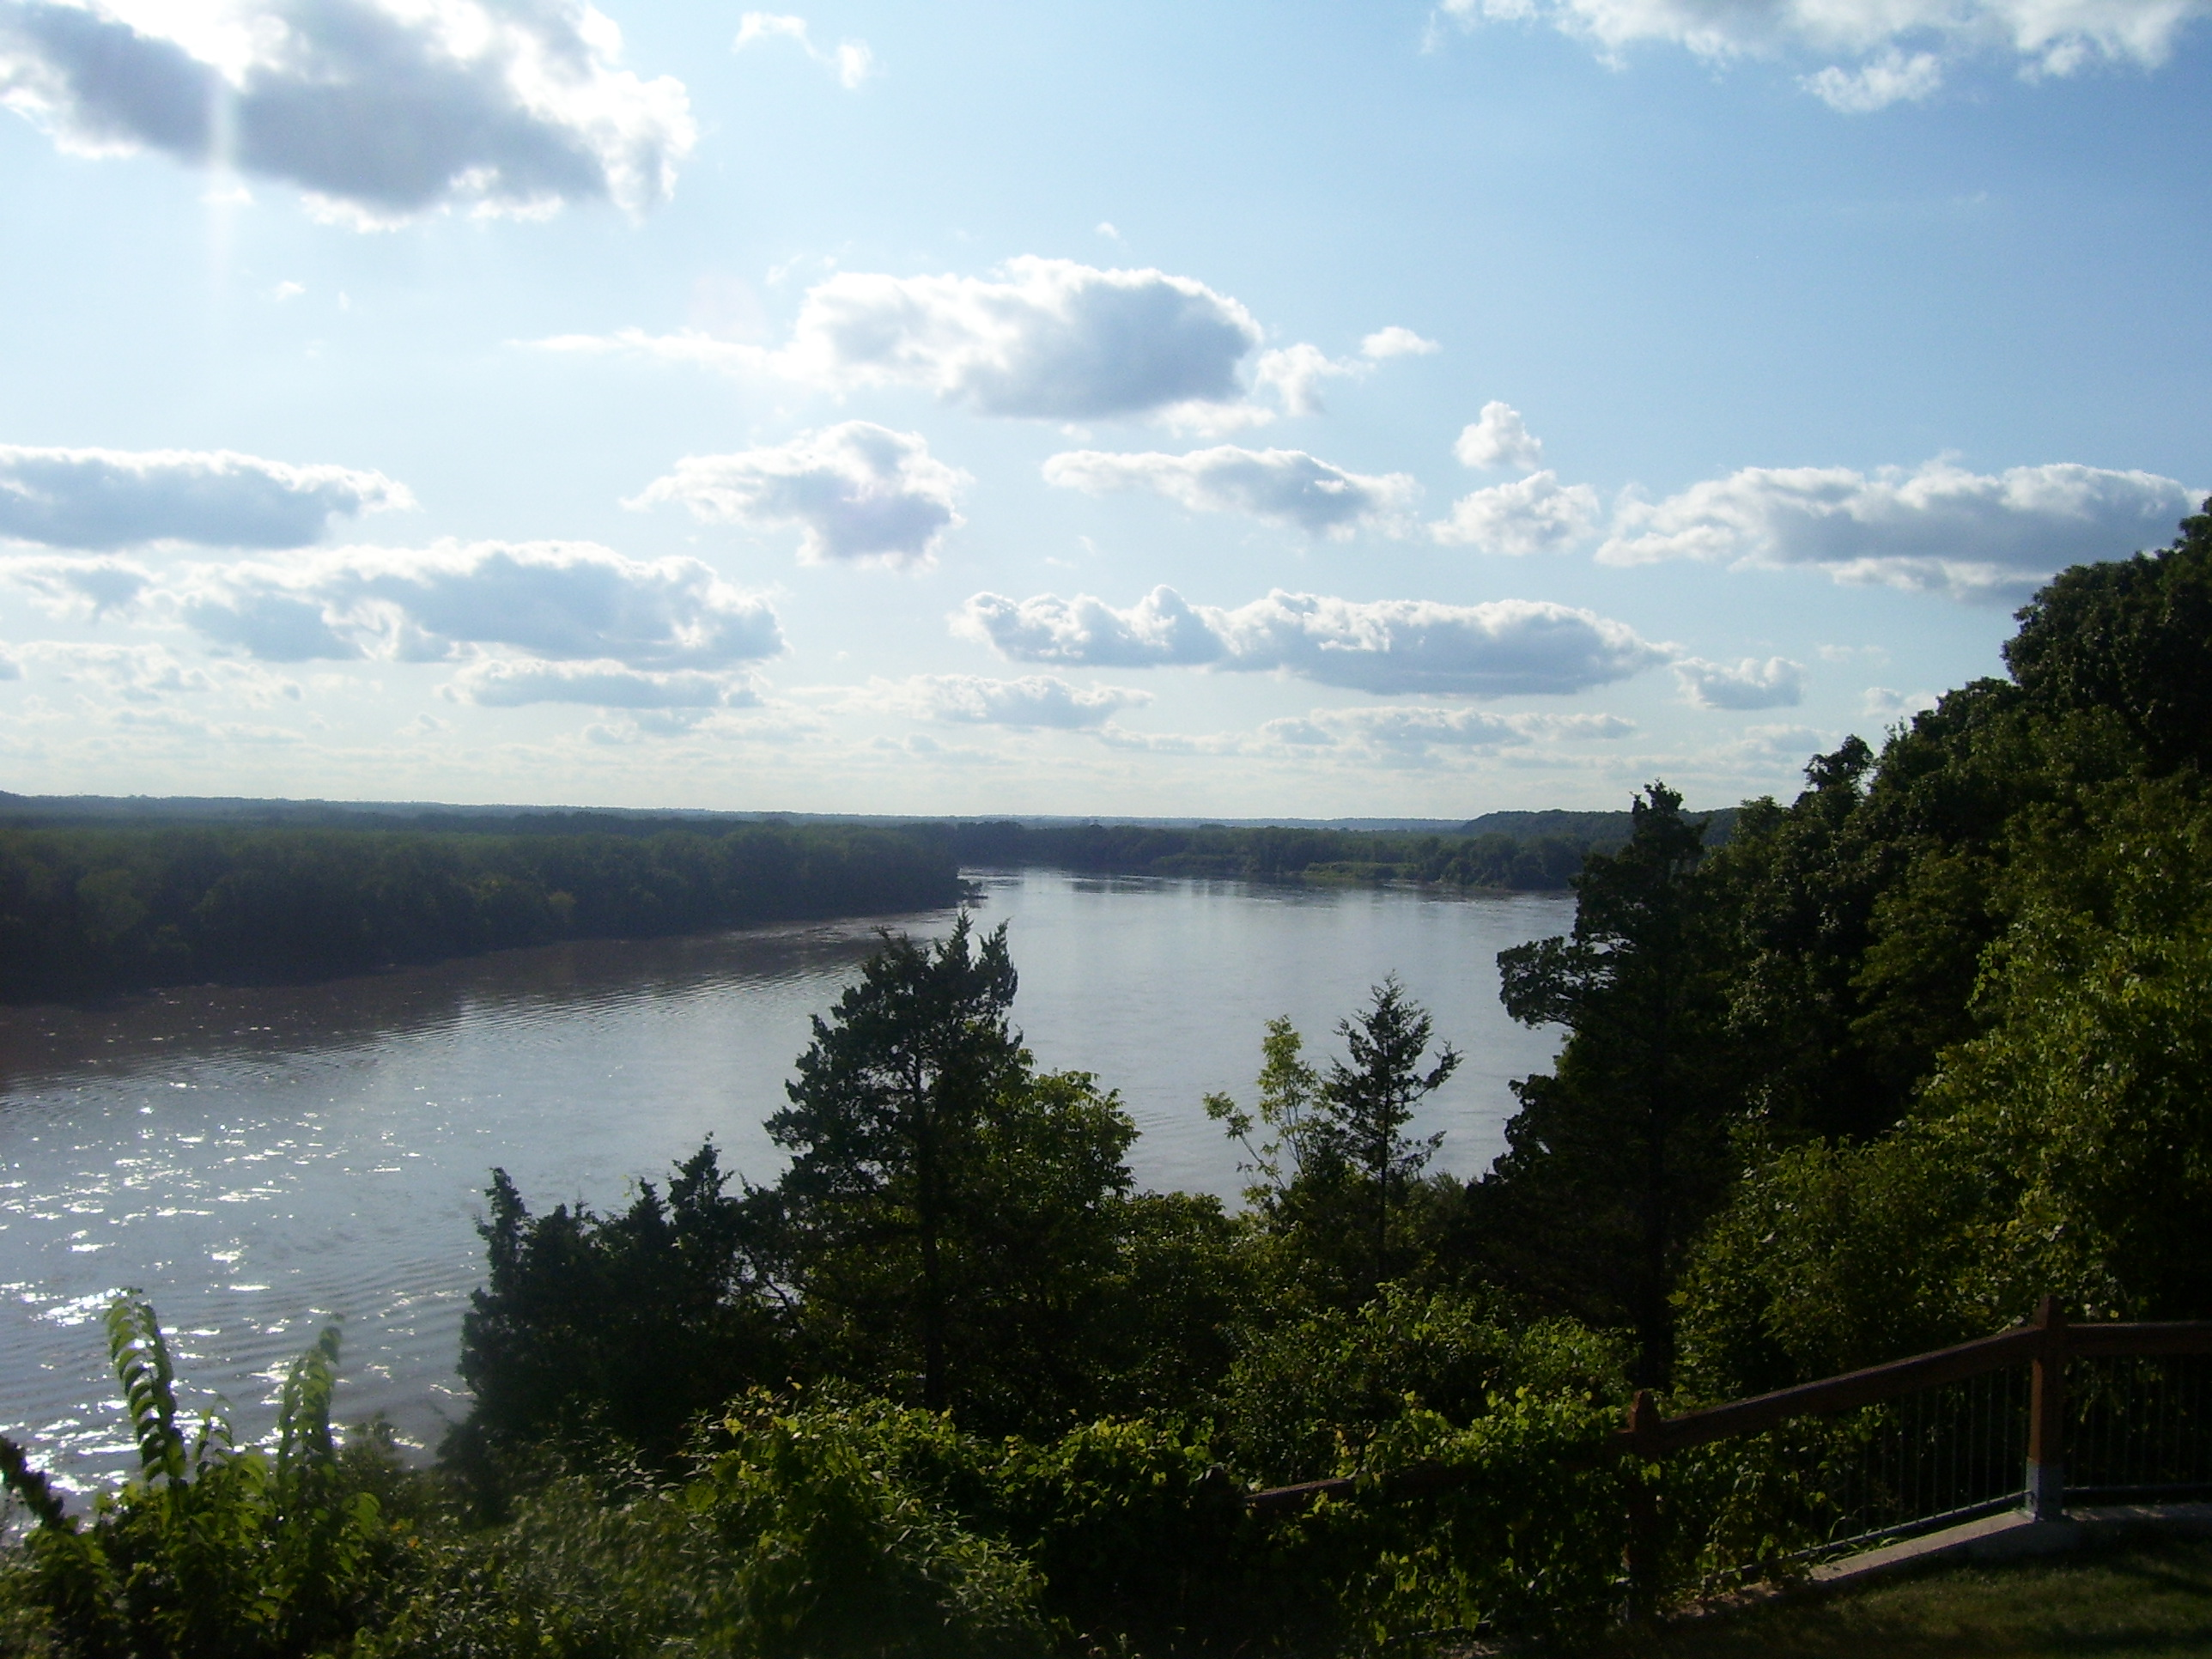 File:Lower Missouri River.jpg  Wikimedia Commons